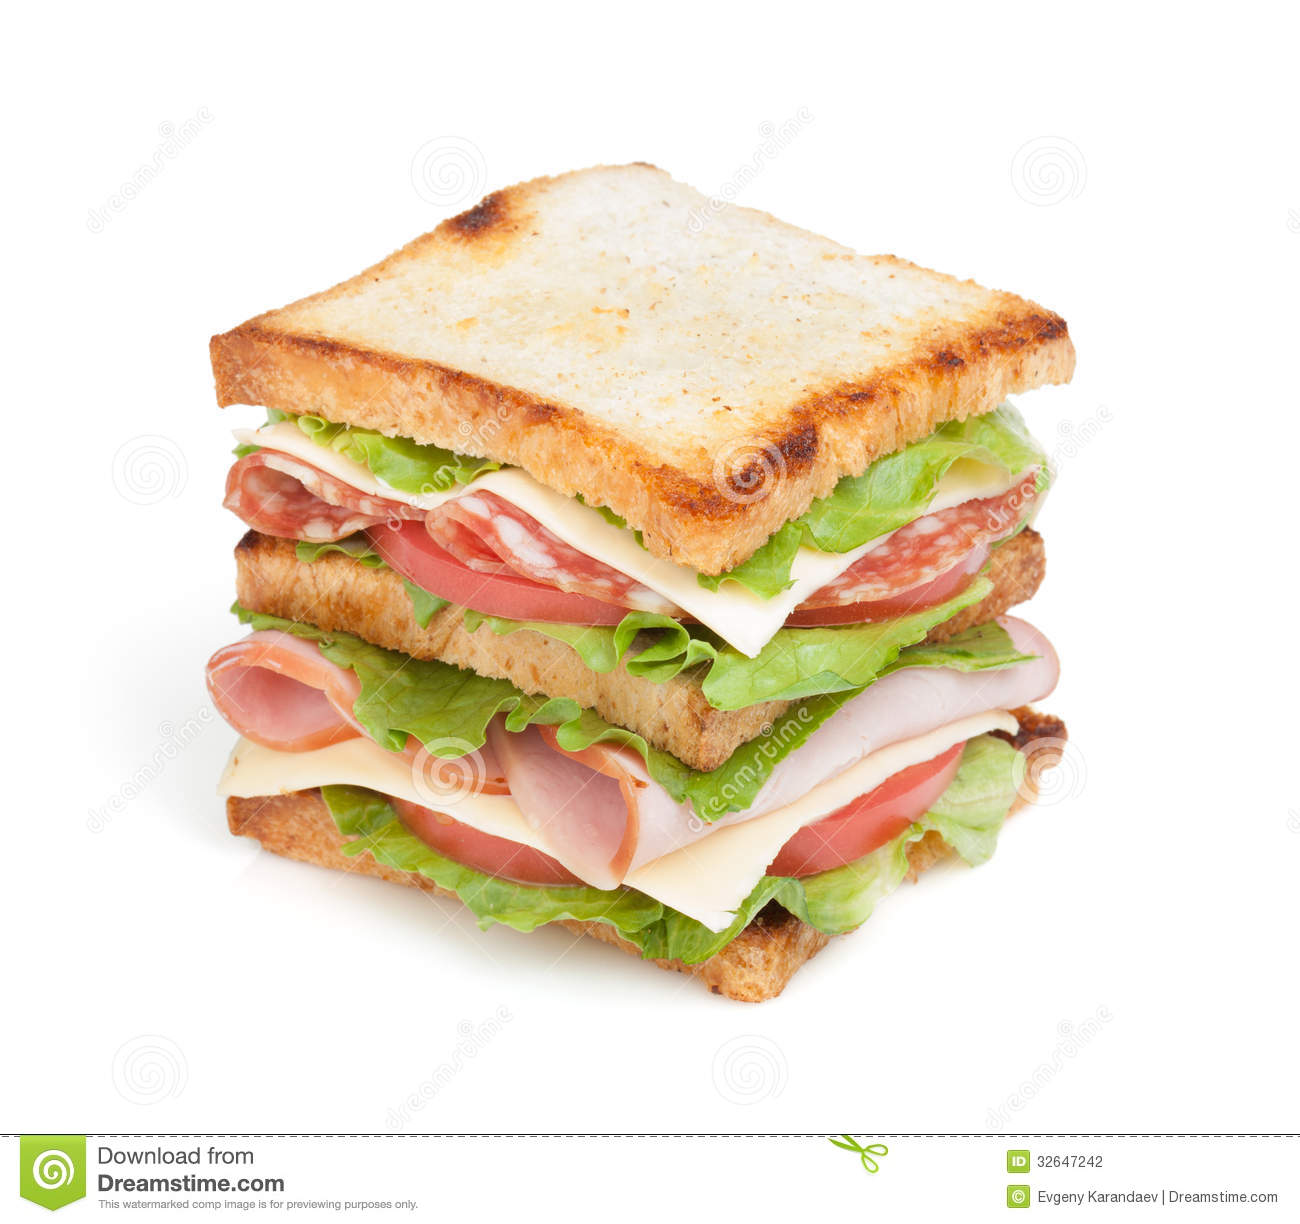 83798 Taco Vectors as well Stock Photos Olive Loaf Lunchmeat Isolated White Image17407623 besides Royalty Free Stock Image Sliced Pizza Icon Isolated White Background Hand Drawing Sketch Vector Illustration Image36185986 as well Royalty Free Stock Images Hamburger Vegetables Fries Image16361729 together with Koneckie Salami Kulinarne 1 Kg. on lunch meat clip art